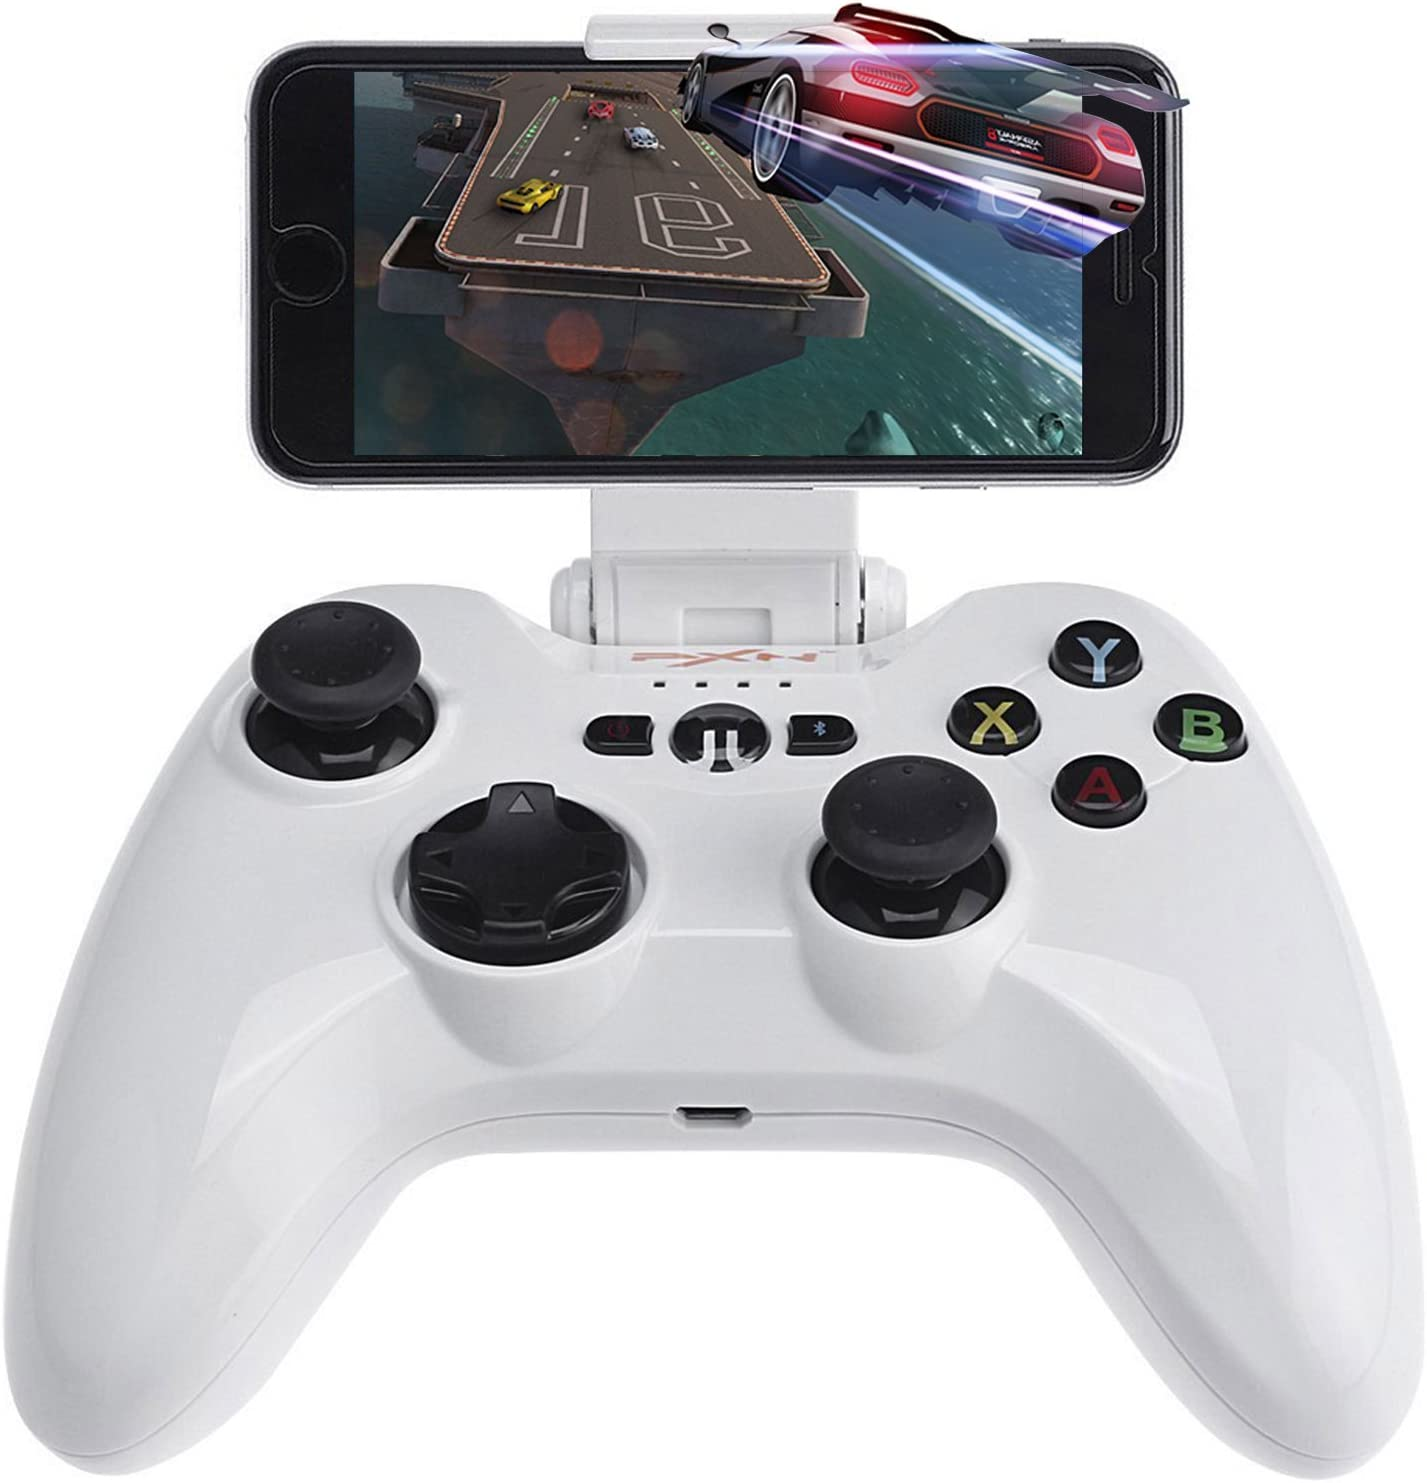 MFi Game Controller for iOS, PXN 6603 Speedy Wireless Joystick Gamepad for iPhone, iPad, iPod, Apple TV(White)